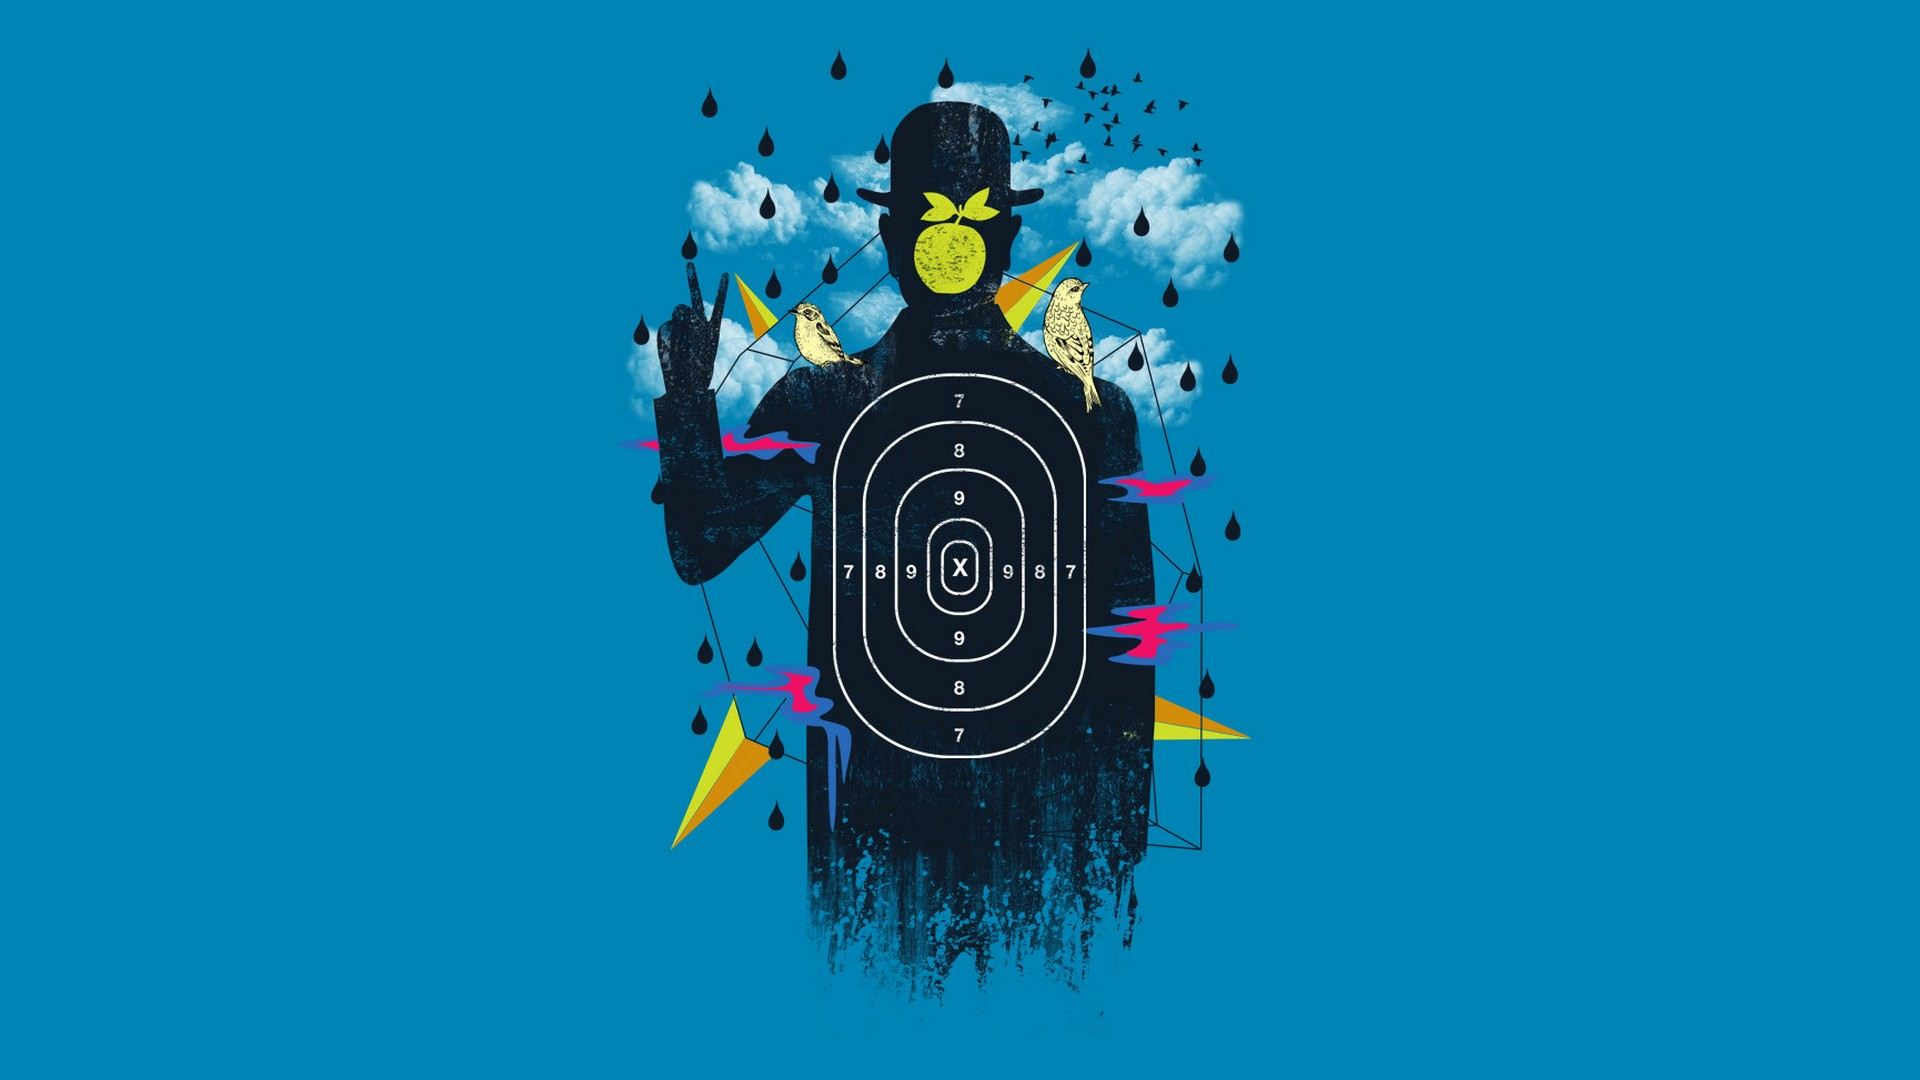 dbbaaccdfeac-shooting-targets-target-practice-wallpaper-wp3601340